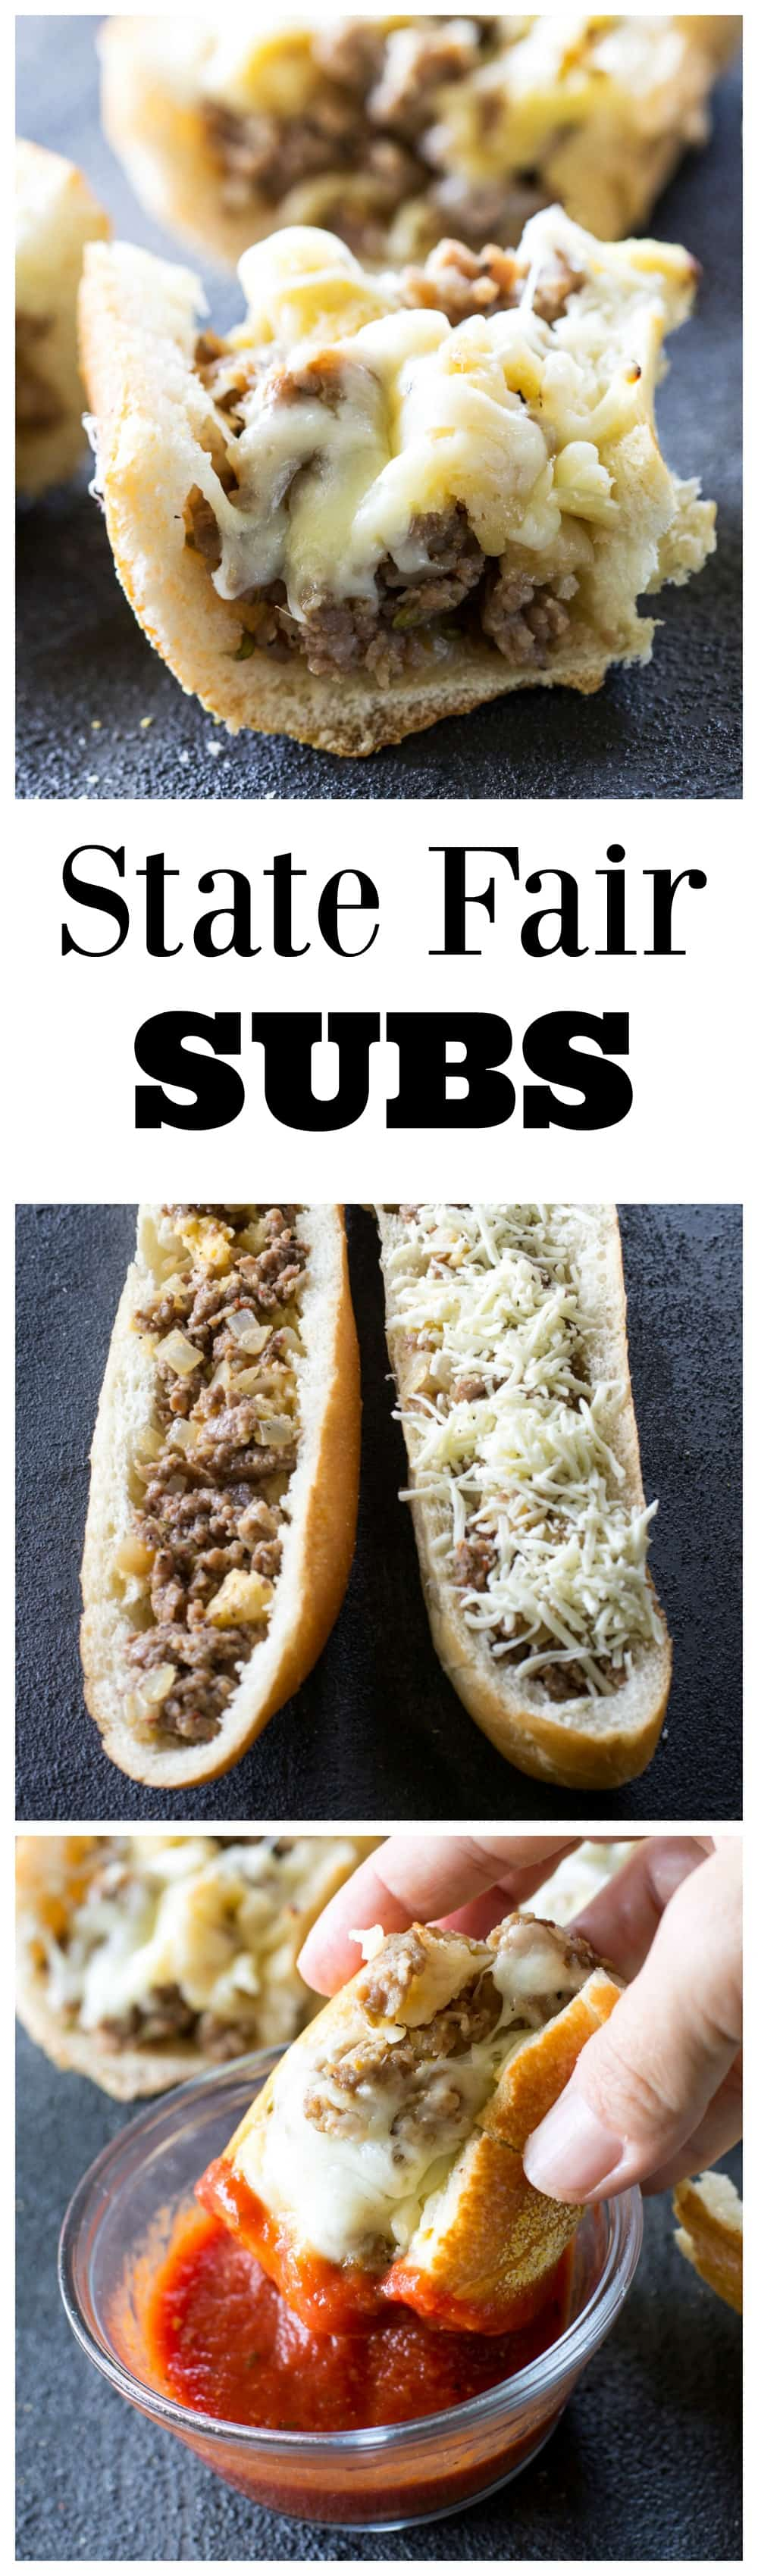 State Fair Subs - sausage and bread cubes tossed together in an egg milk mixture and baked until toasty! #state #fair #subs #recipe